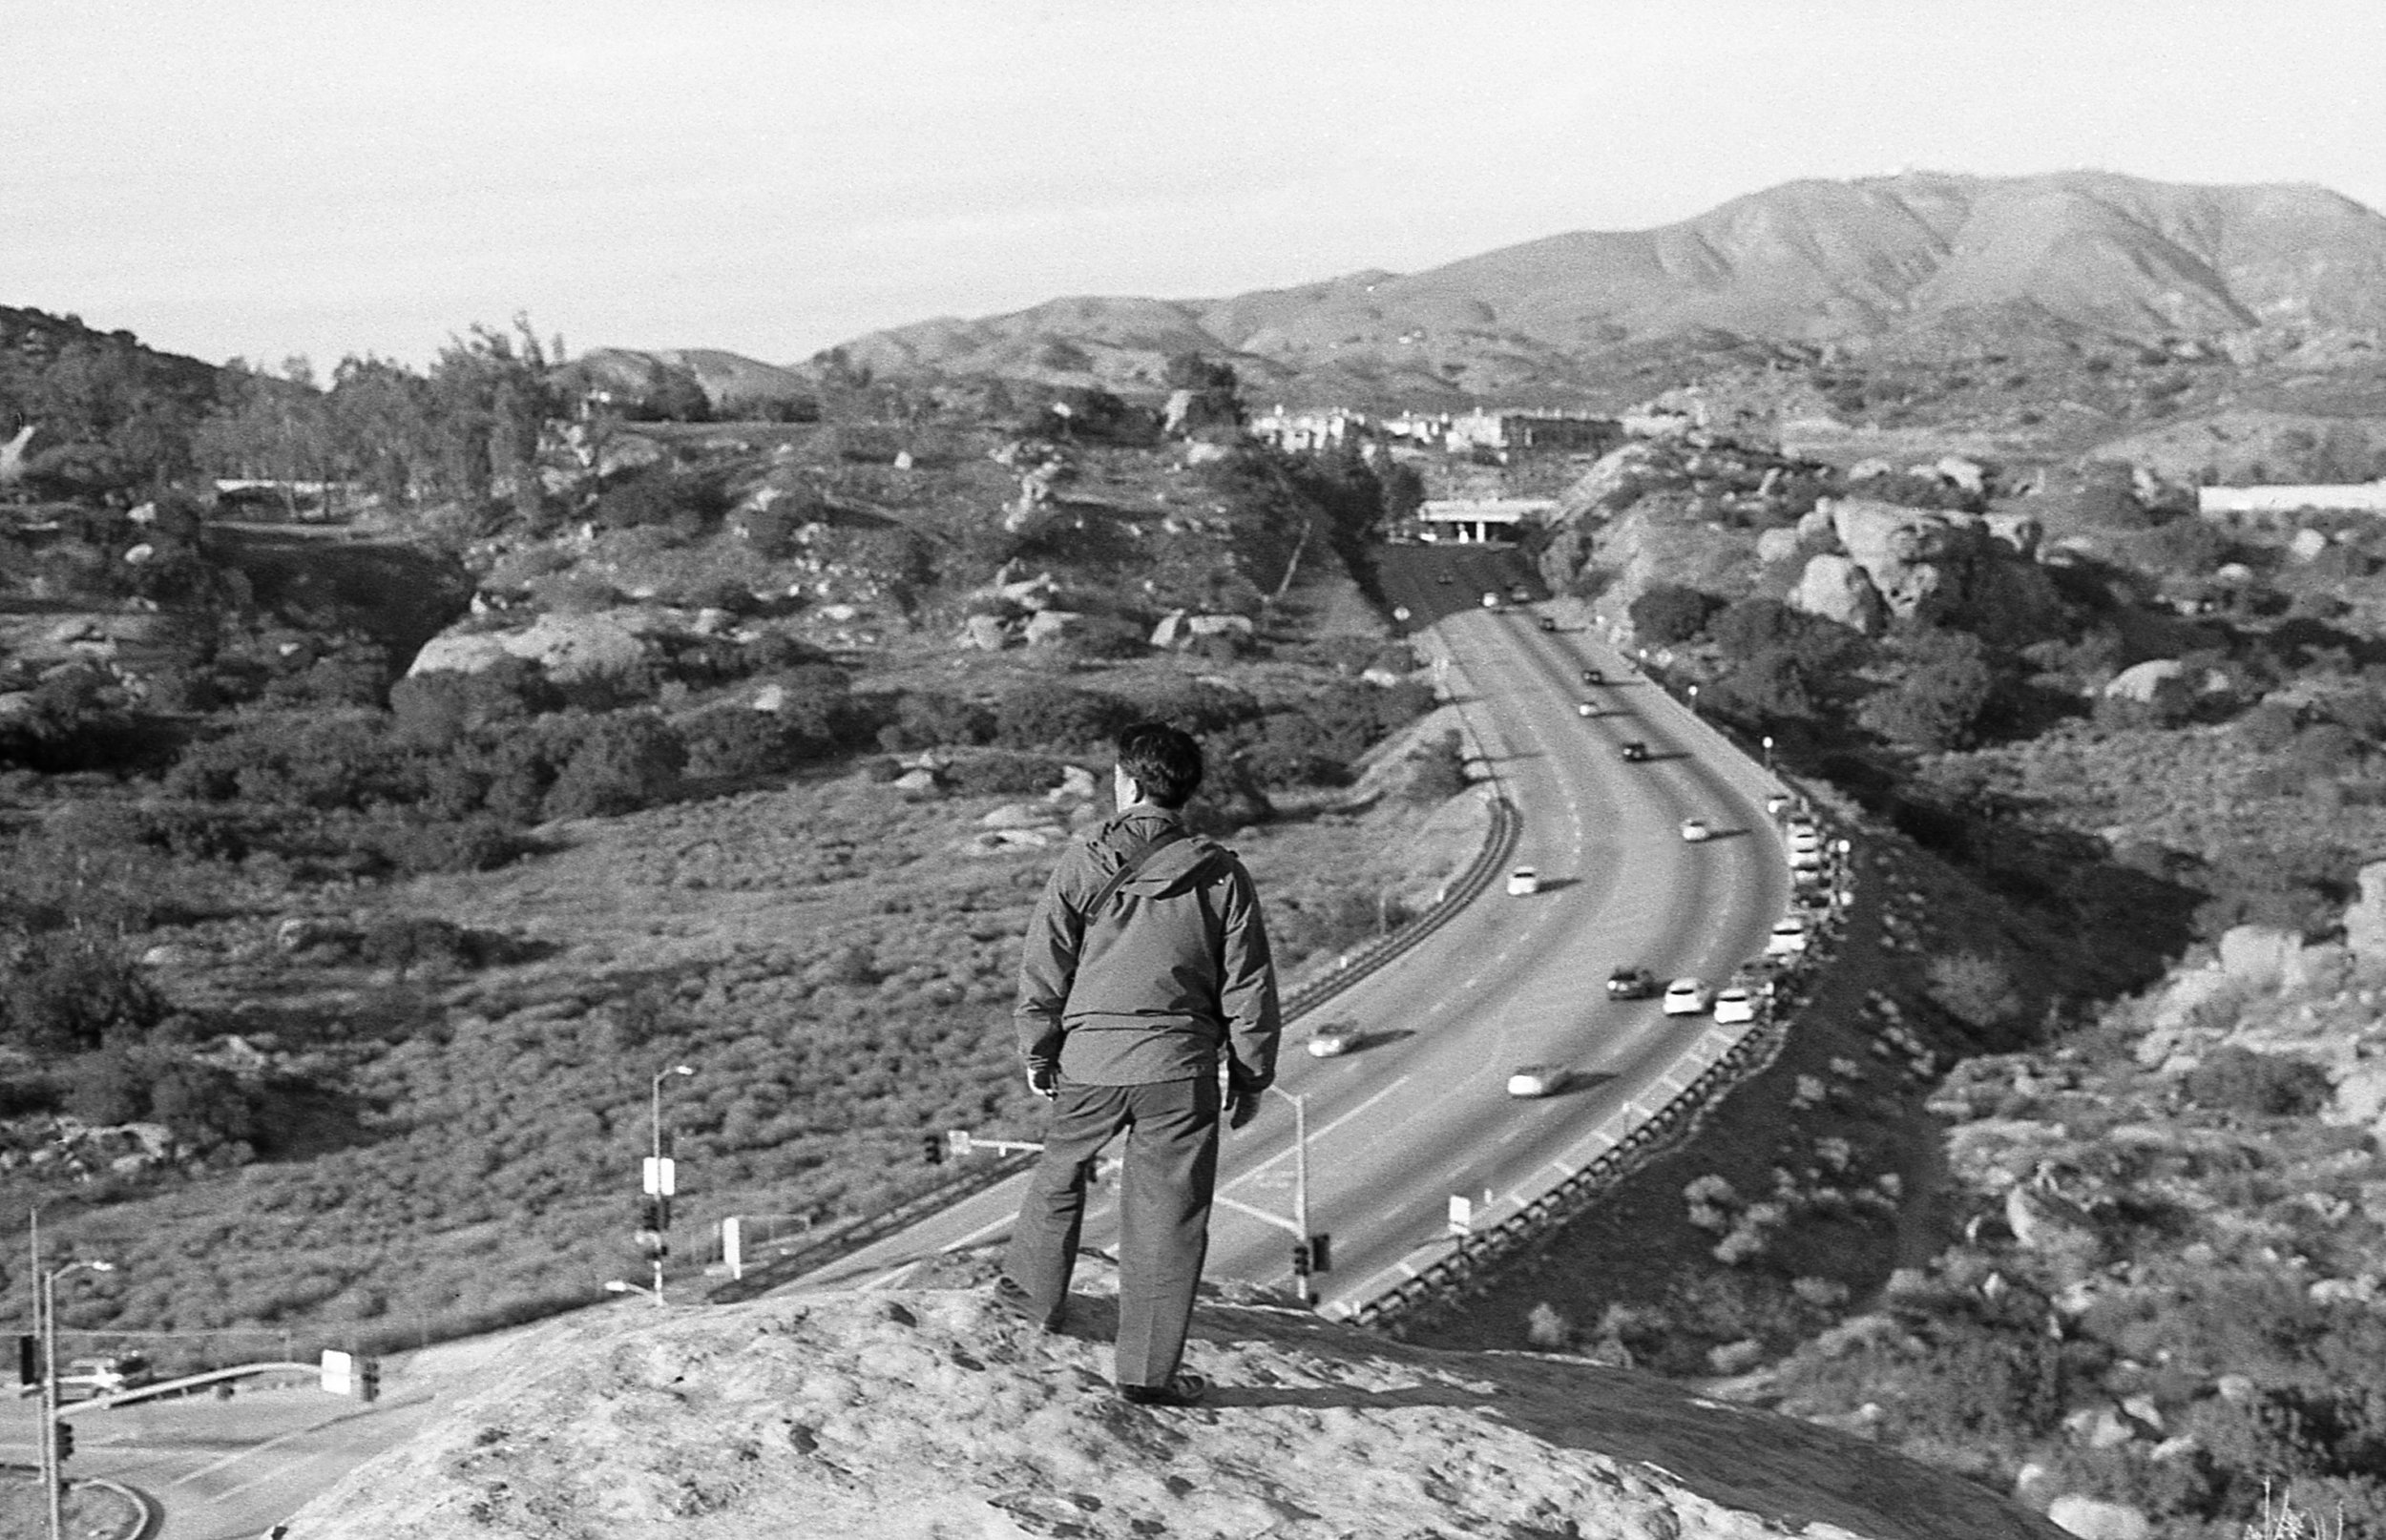 John's father standing on a promontory over Los Angeles.